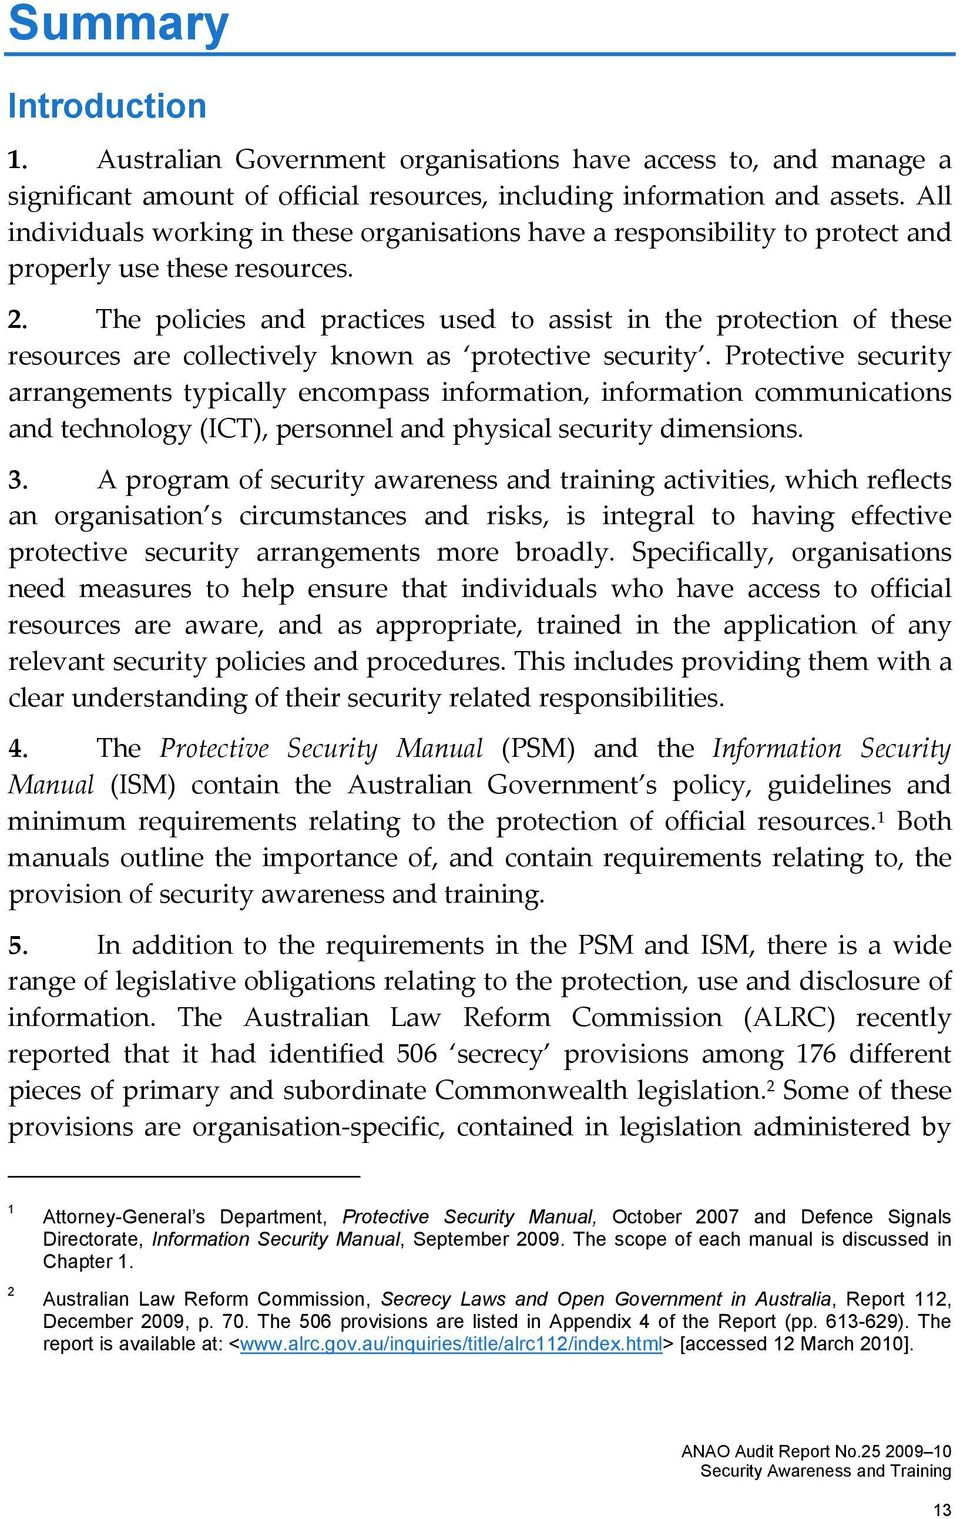 The policies and practices used to assist in the protection of these resources are collectively known as protective security.